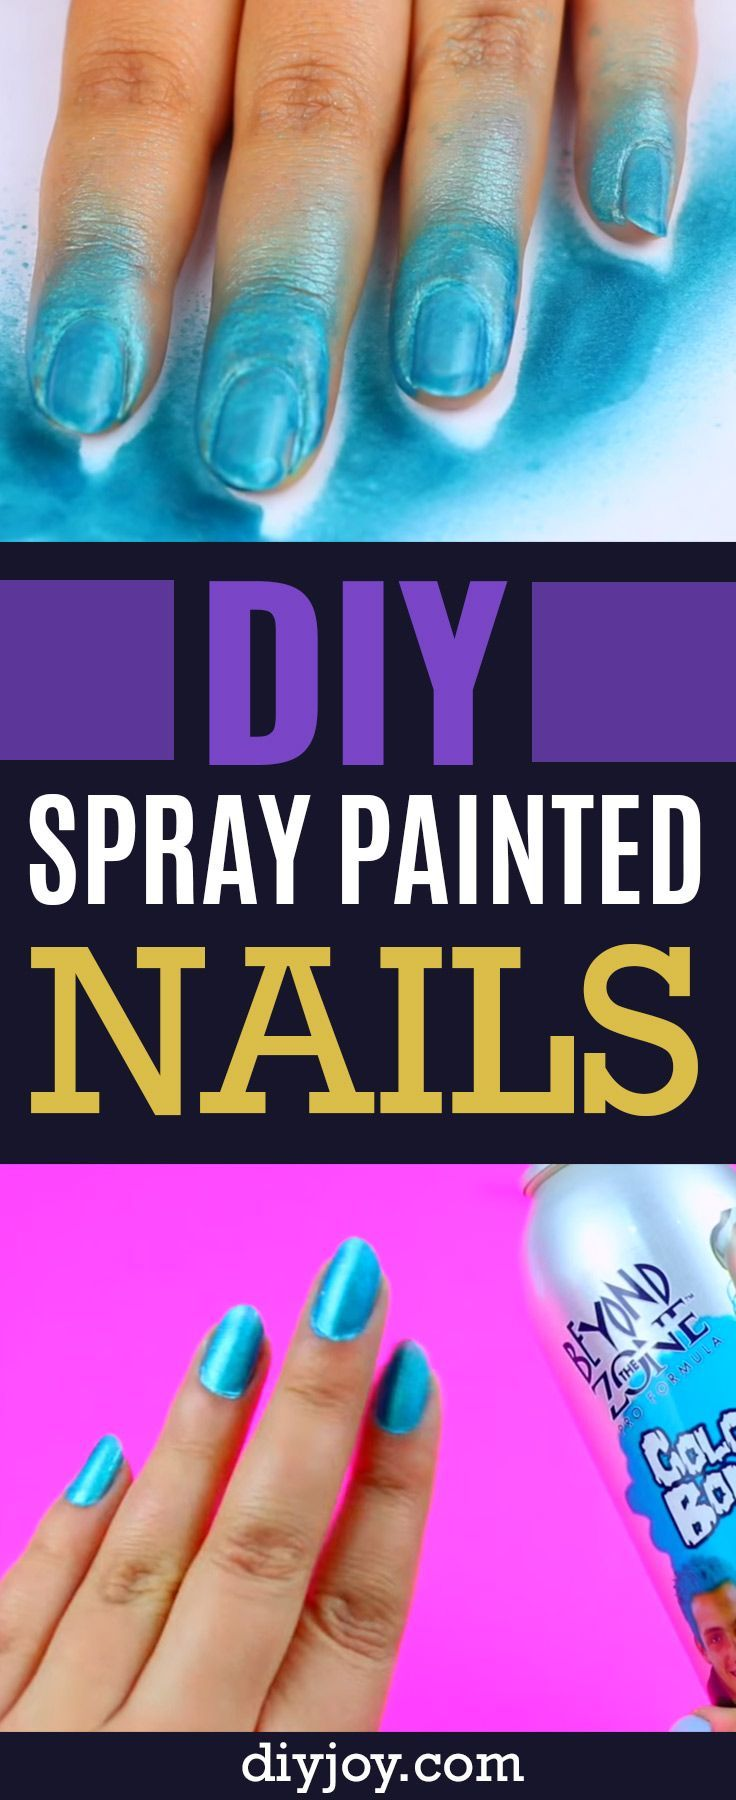 Diy Spray Painted Nails Cool Diy Project And Beauty Hack That Shows You How To Get A Spray Paint Manicure At Home Easy Manicure Diy Spray Paint Diy Sprays